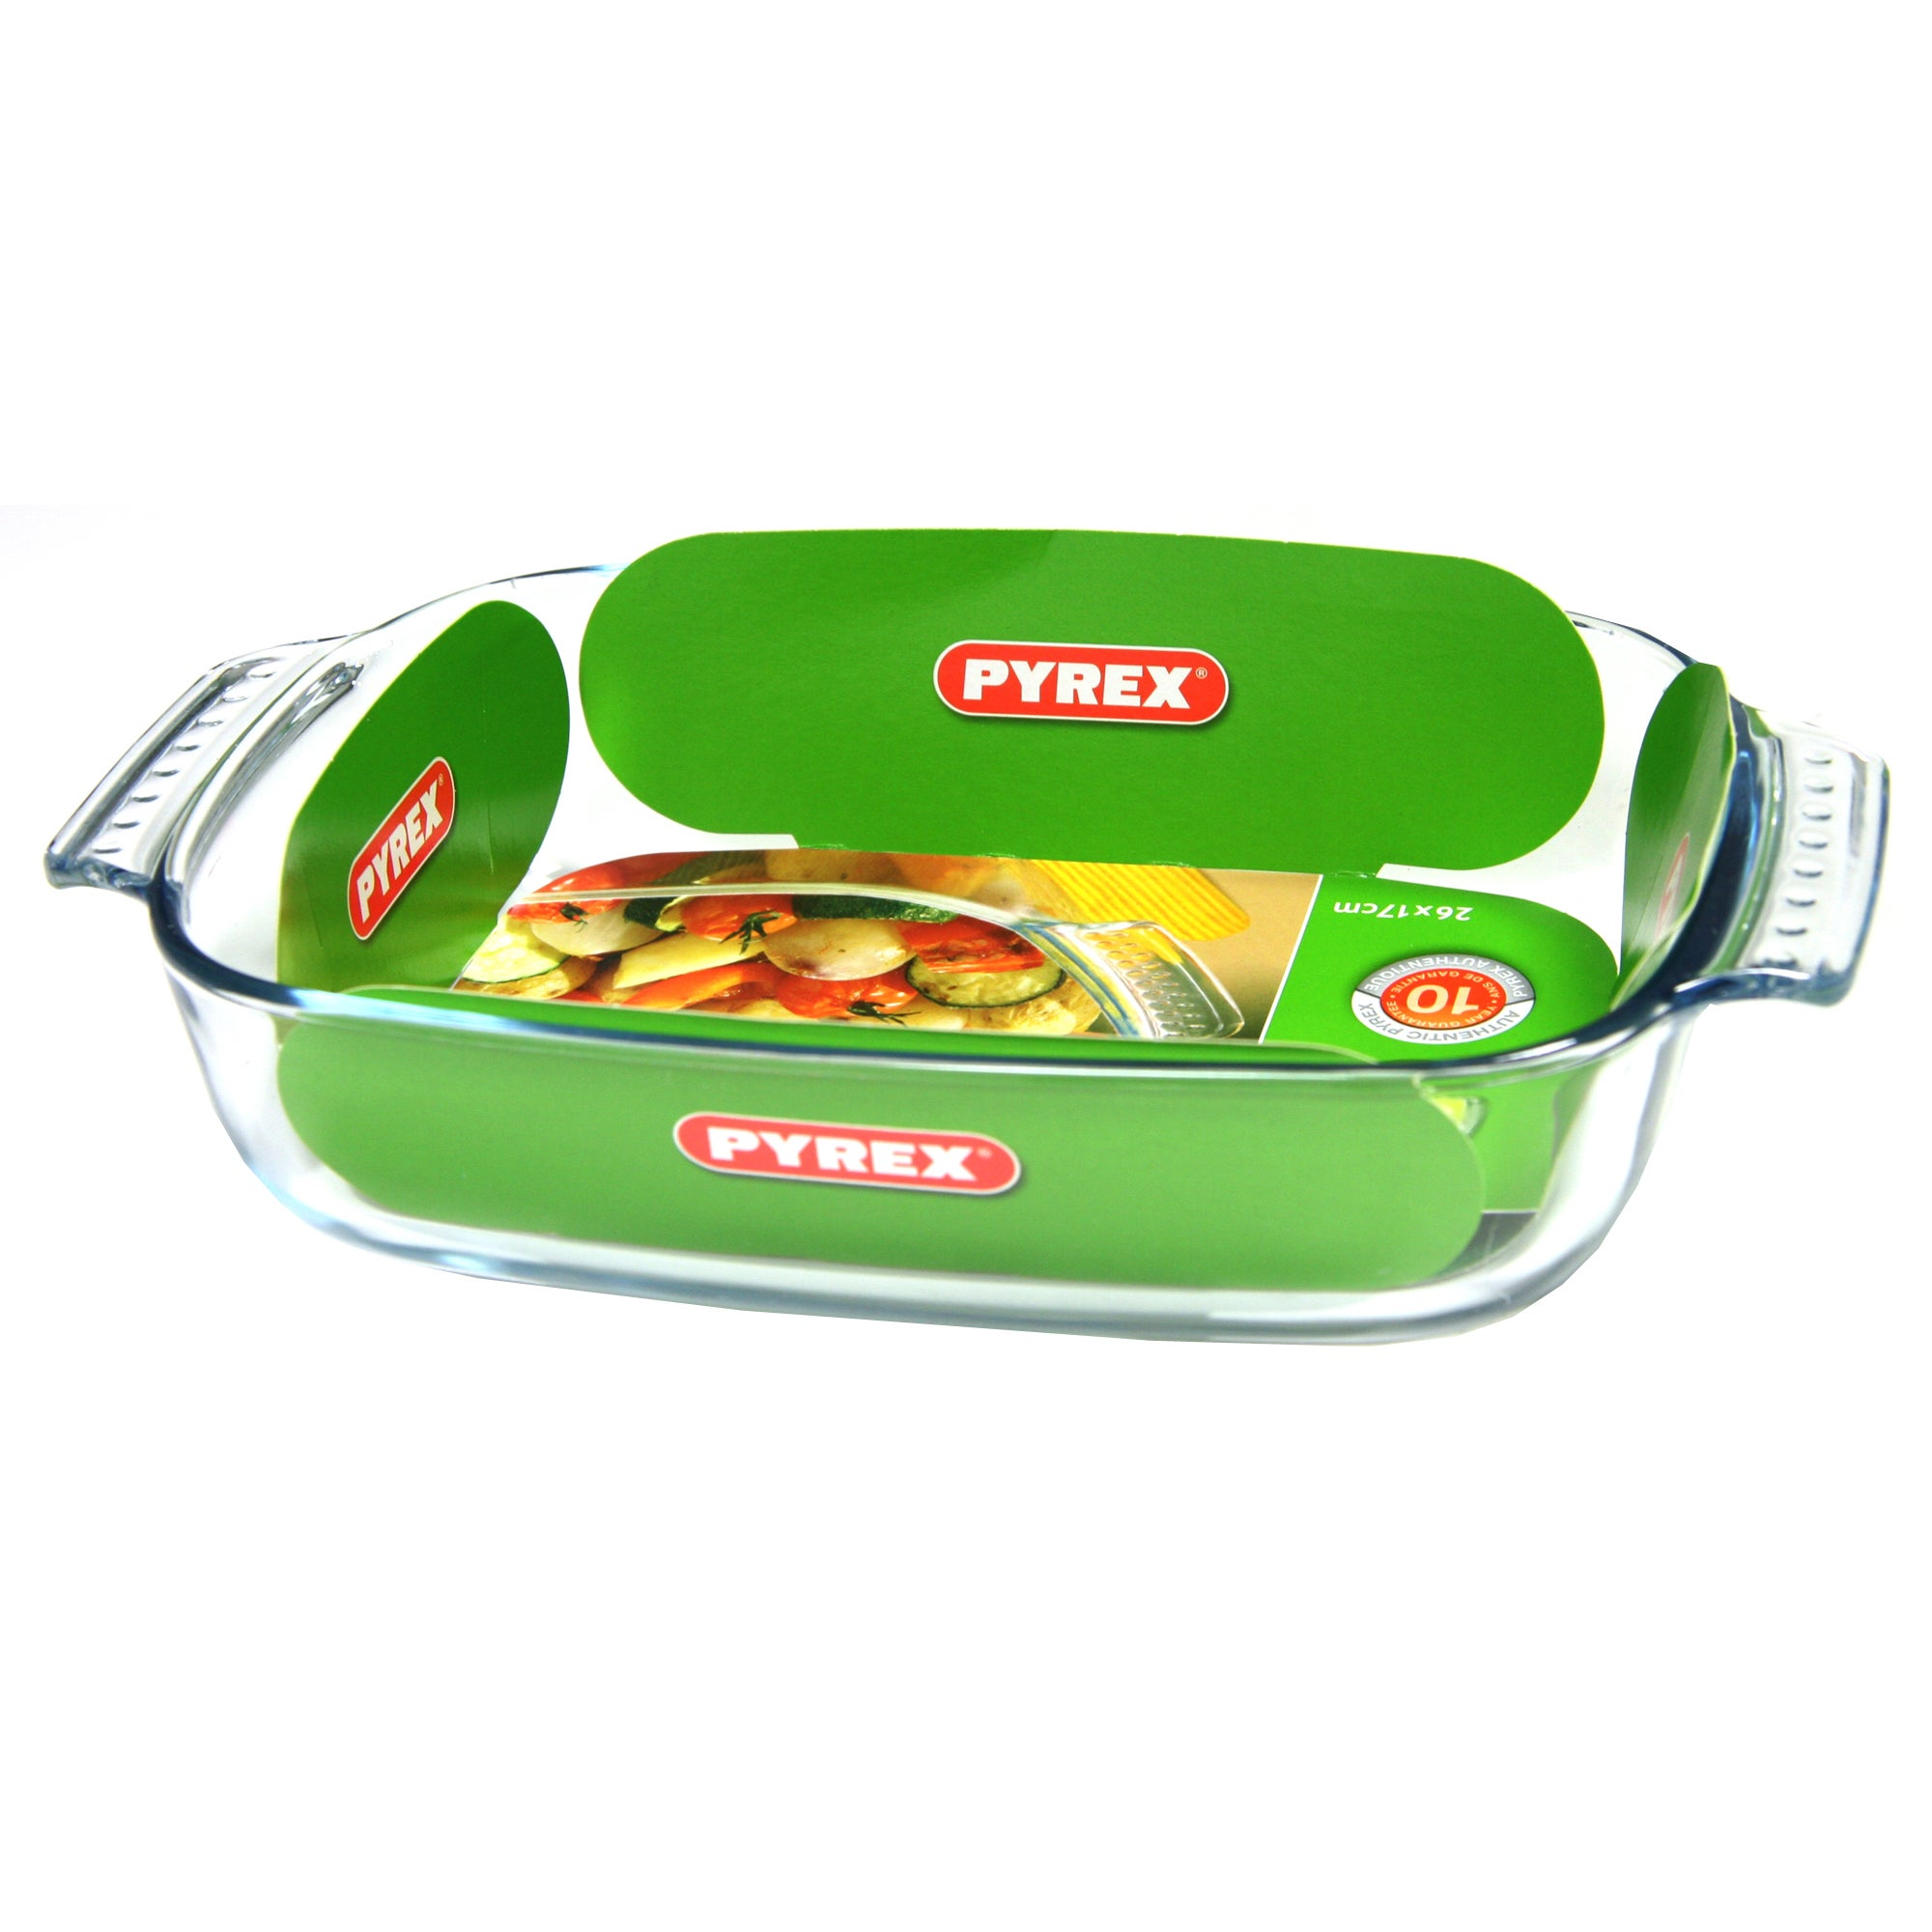 Pyrex Rectangular Roaster